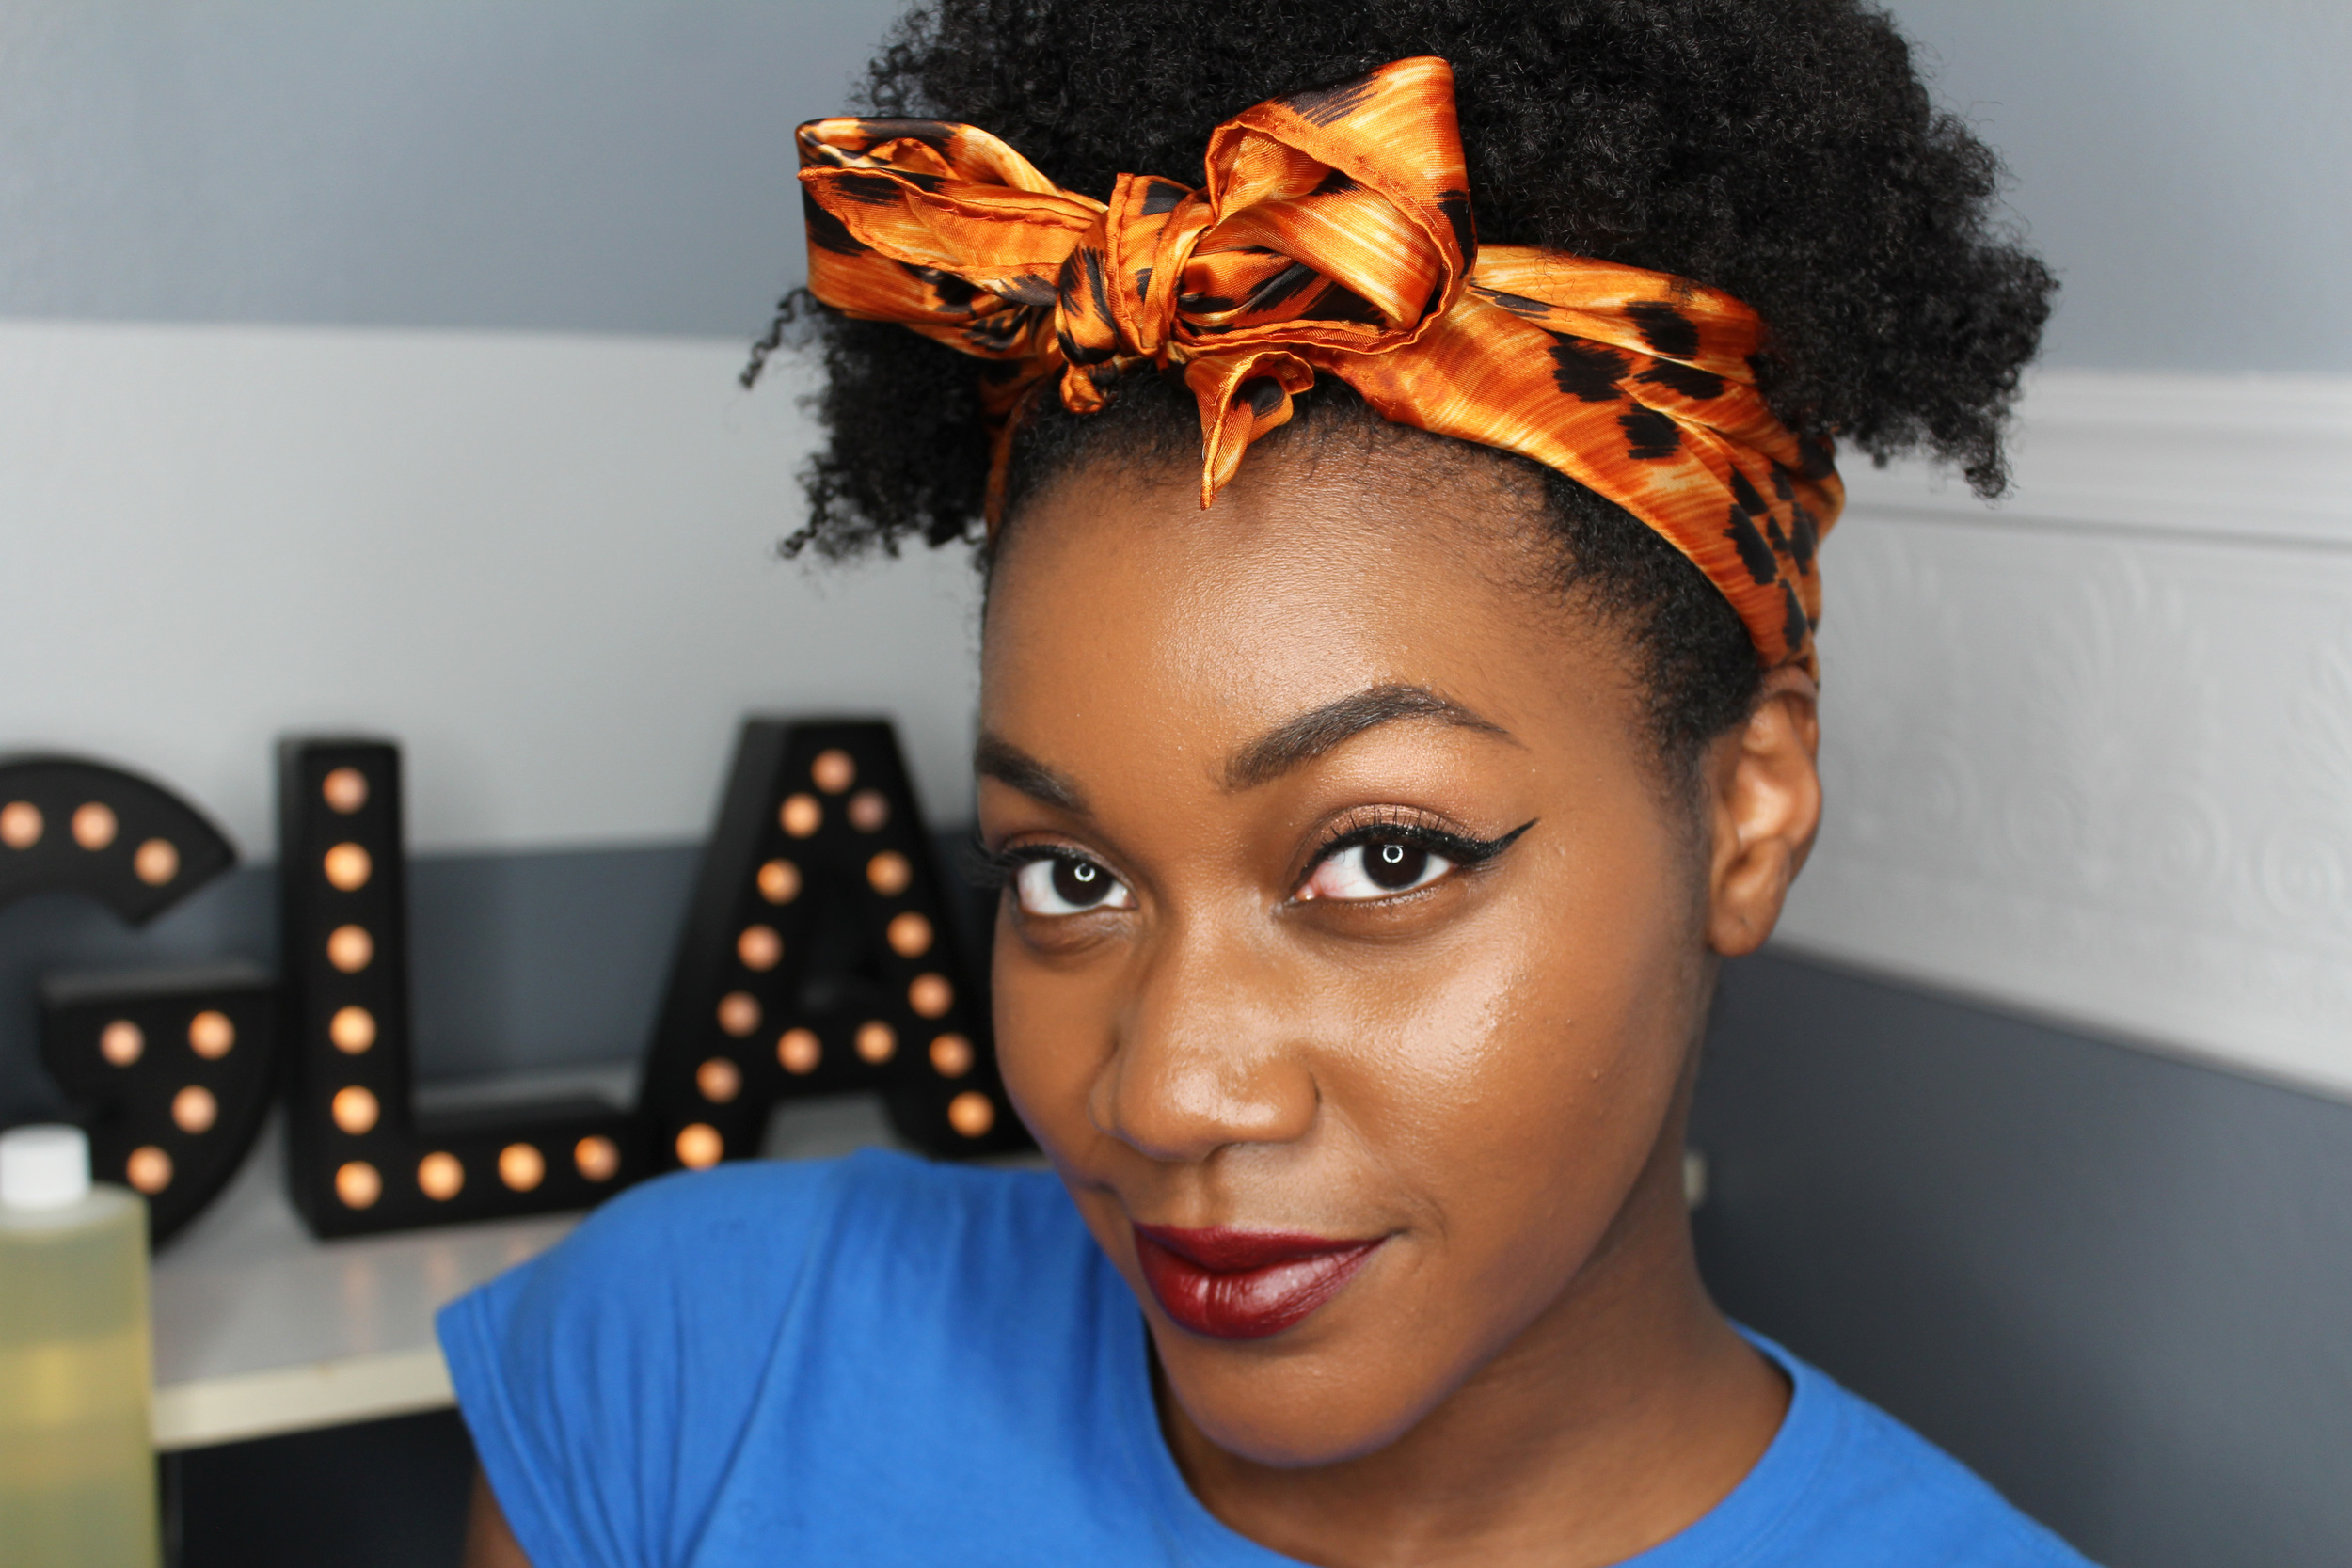 How To Reduce Frizz Rock A Scarf For Natural Hair Jaleesa Charisse